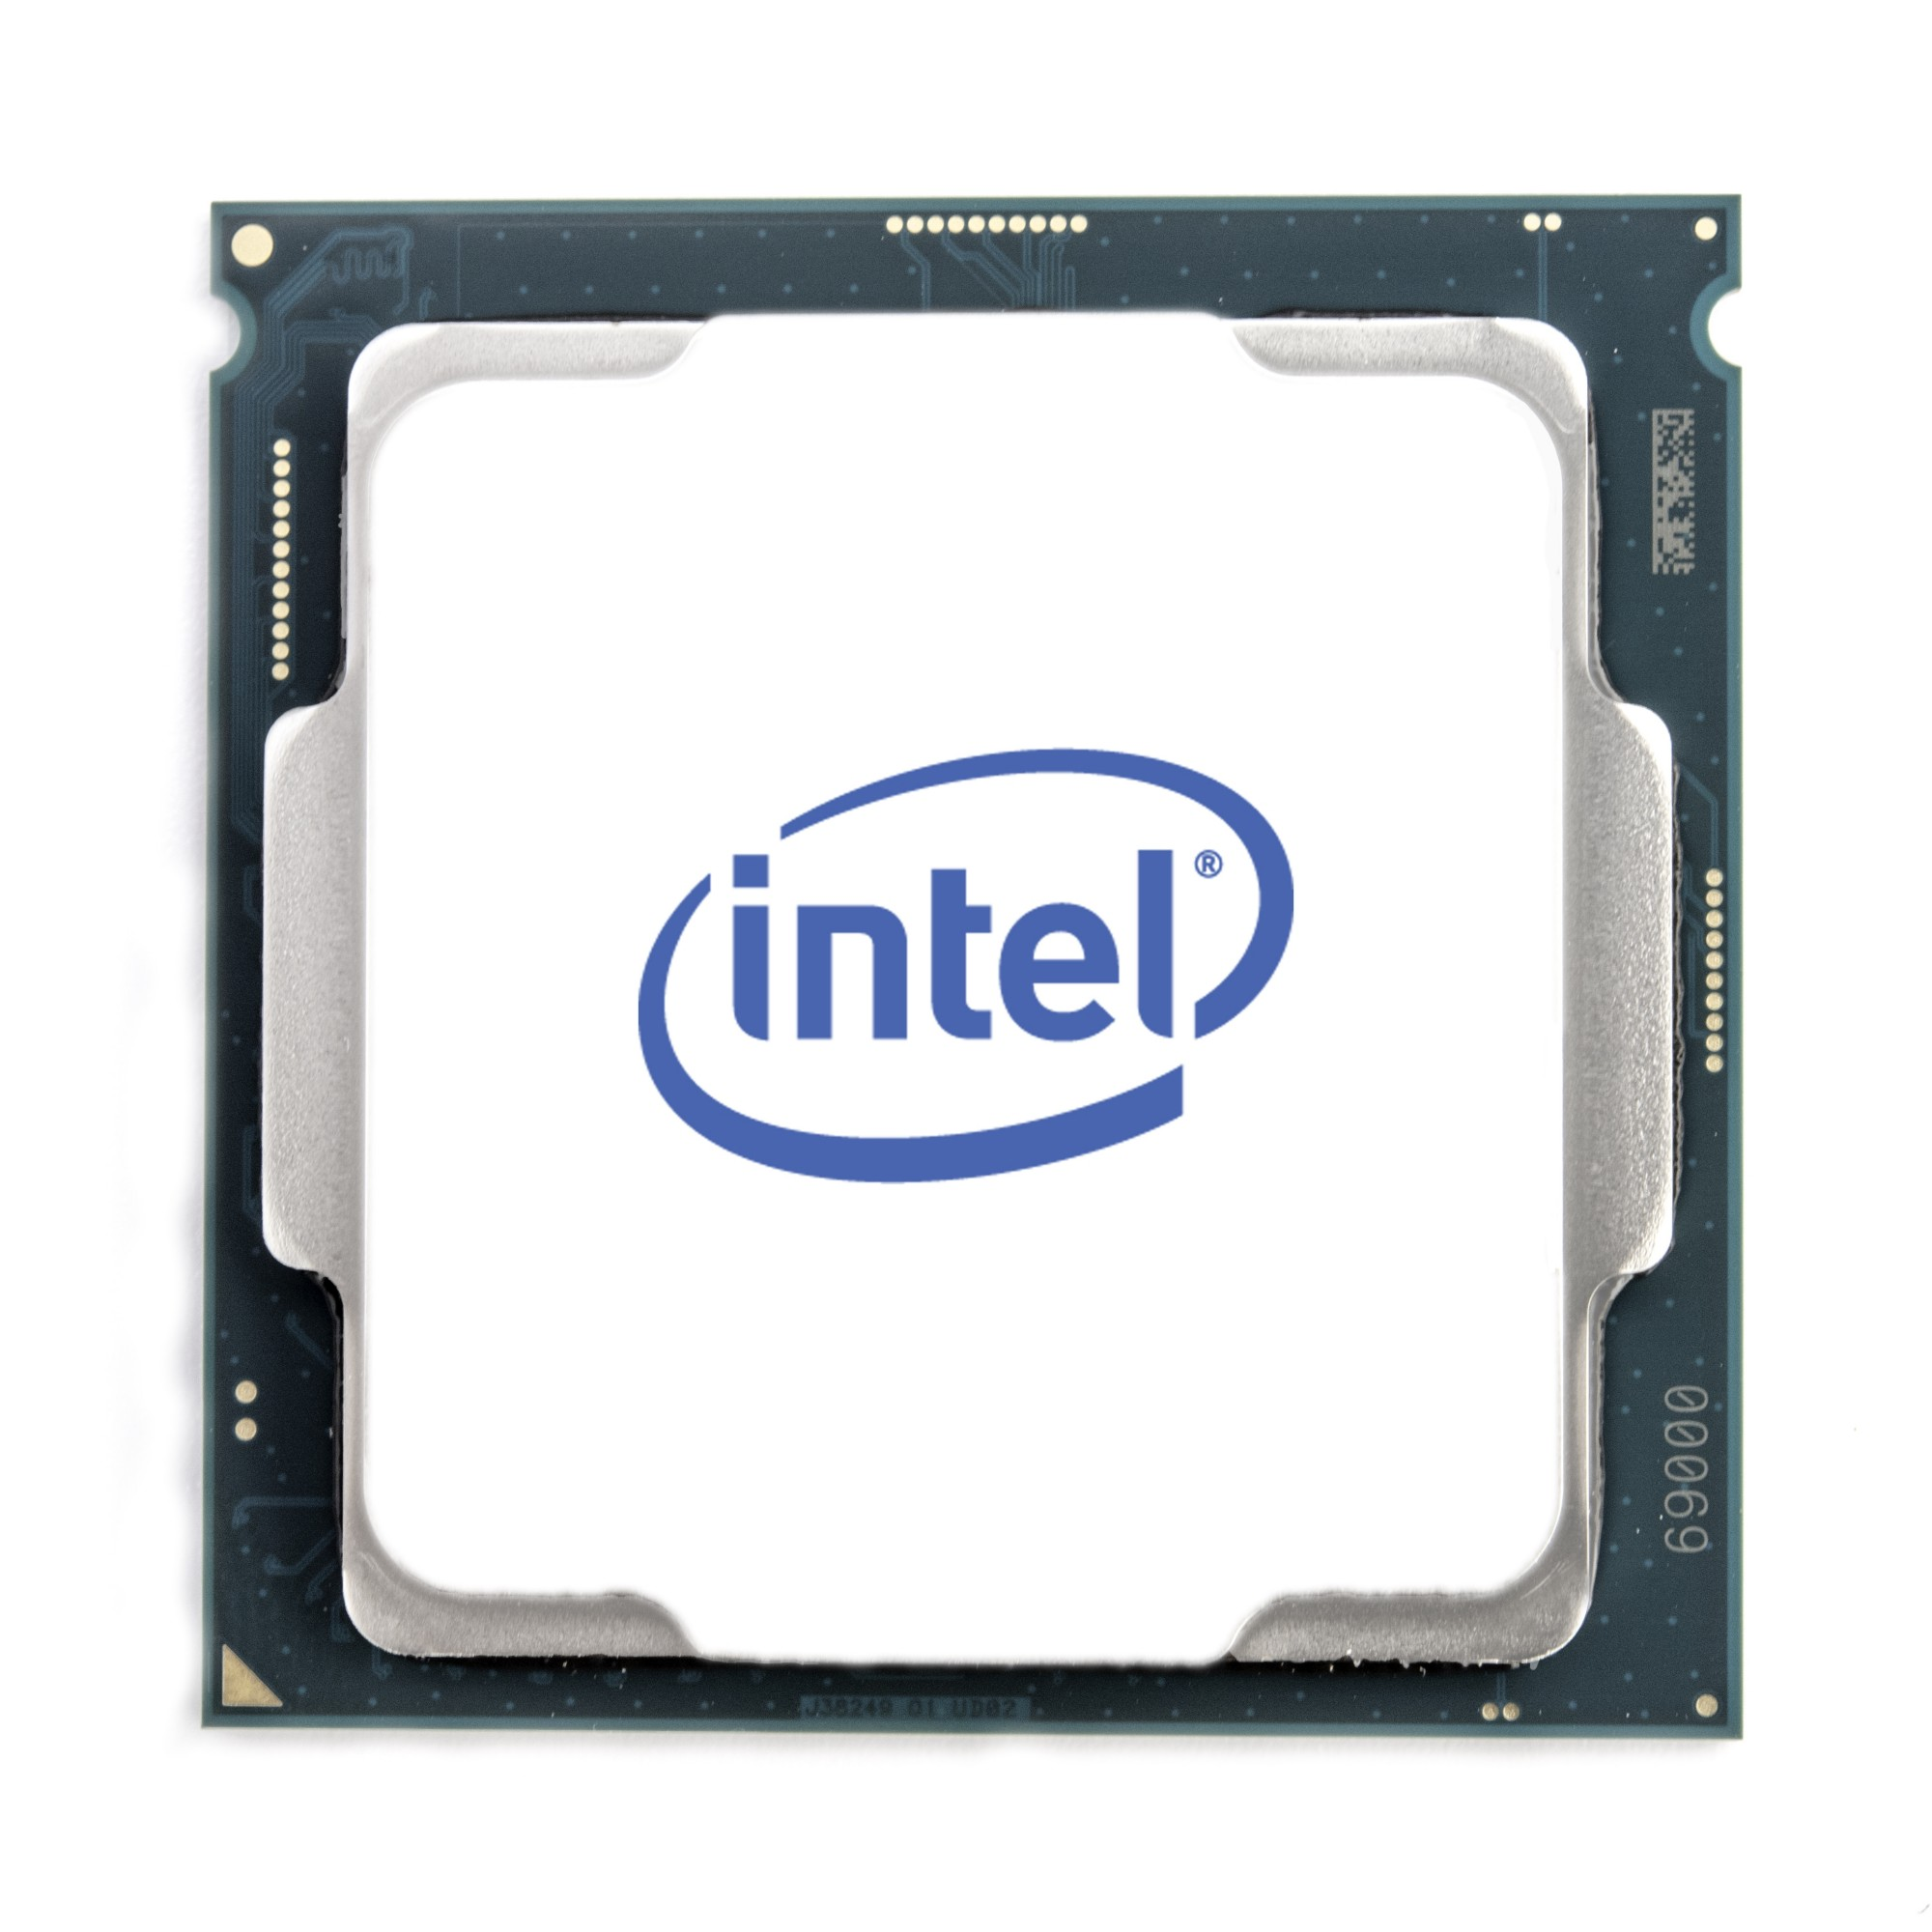 INTEL XEON 5222 PROCESSOR 3.8 GHZ 17 MB